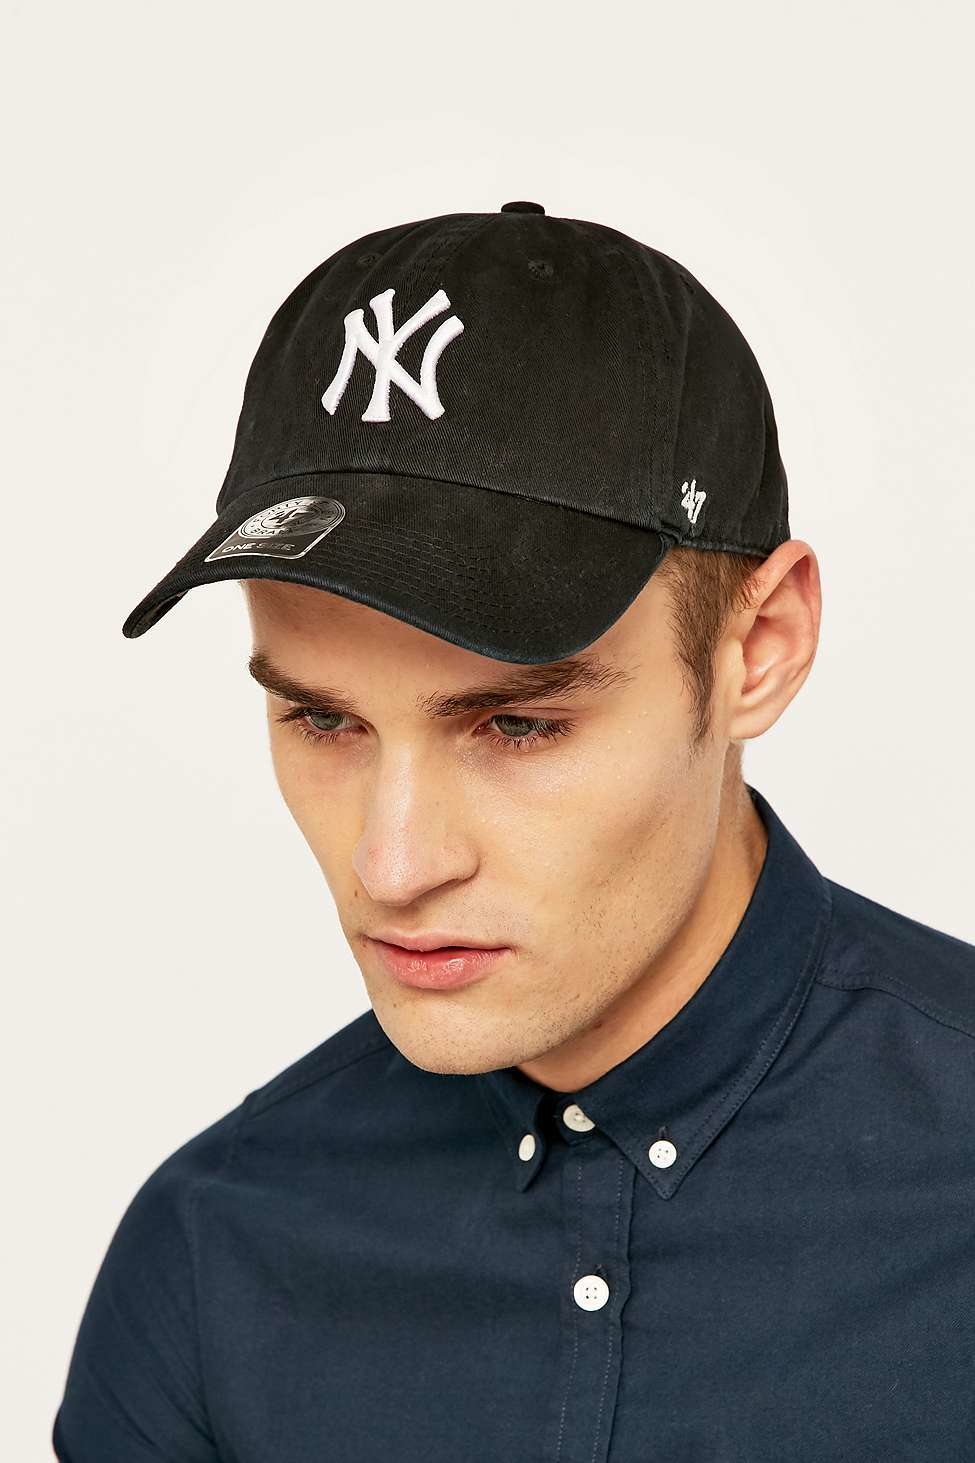 47 Brand Mlb Ny Cleanup Cap In Black For Men Lyst